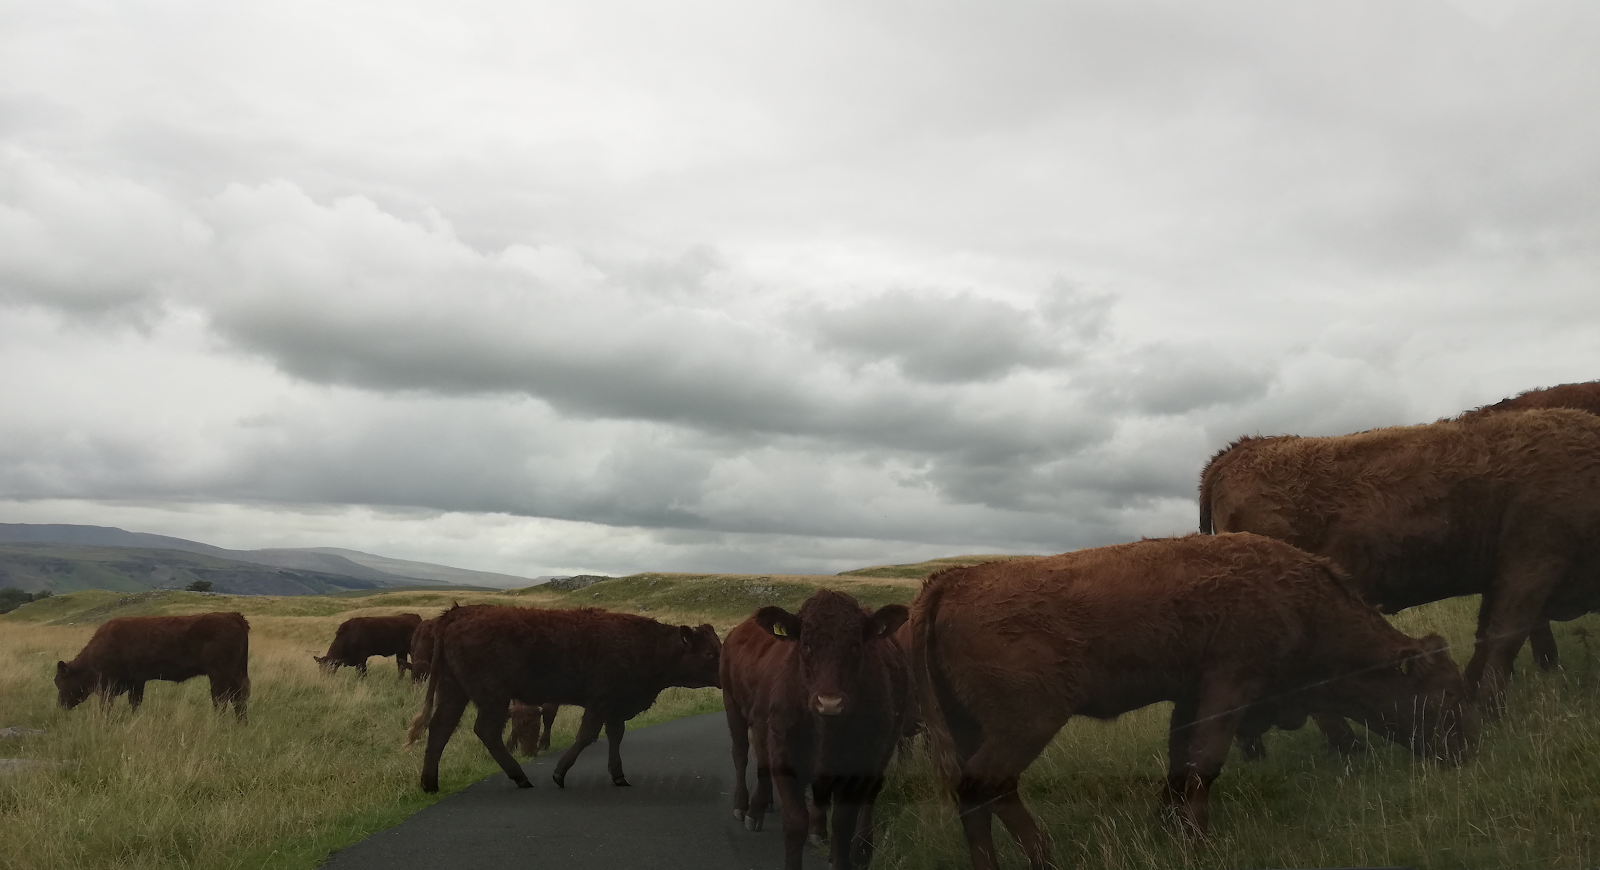 Stubbern cows on the road